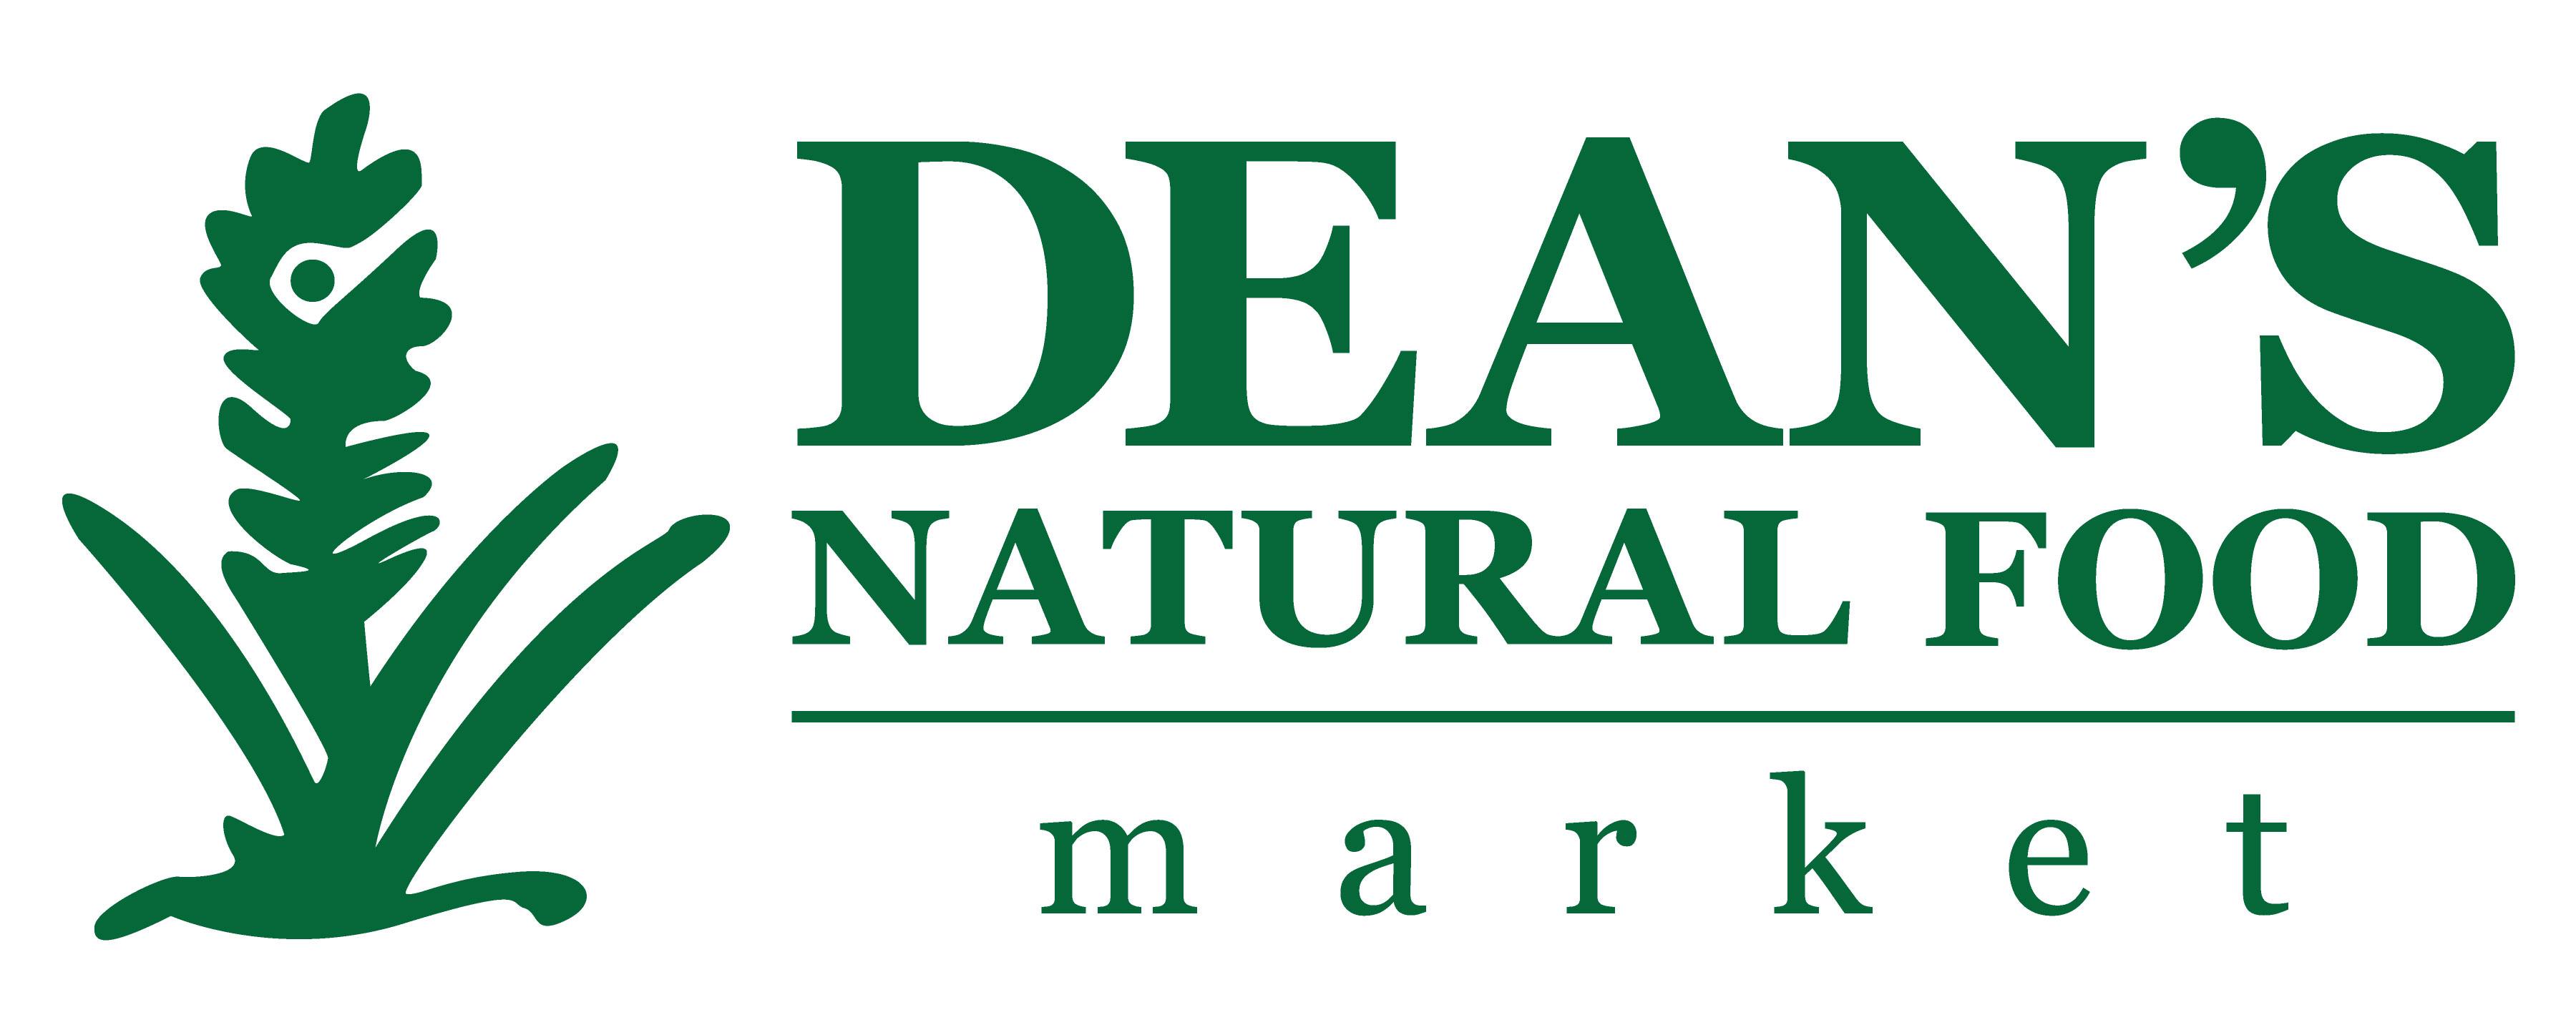 Dean S Natural Food Market